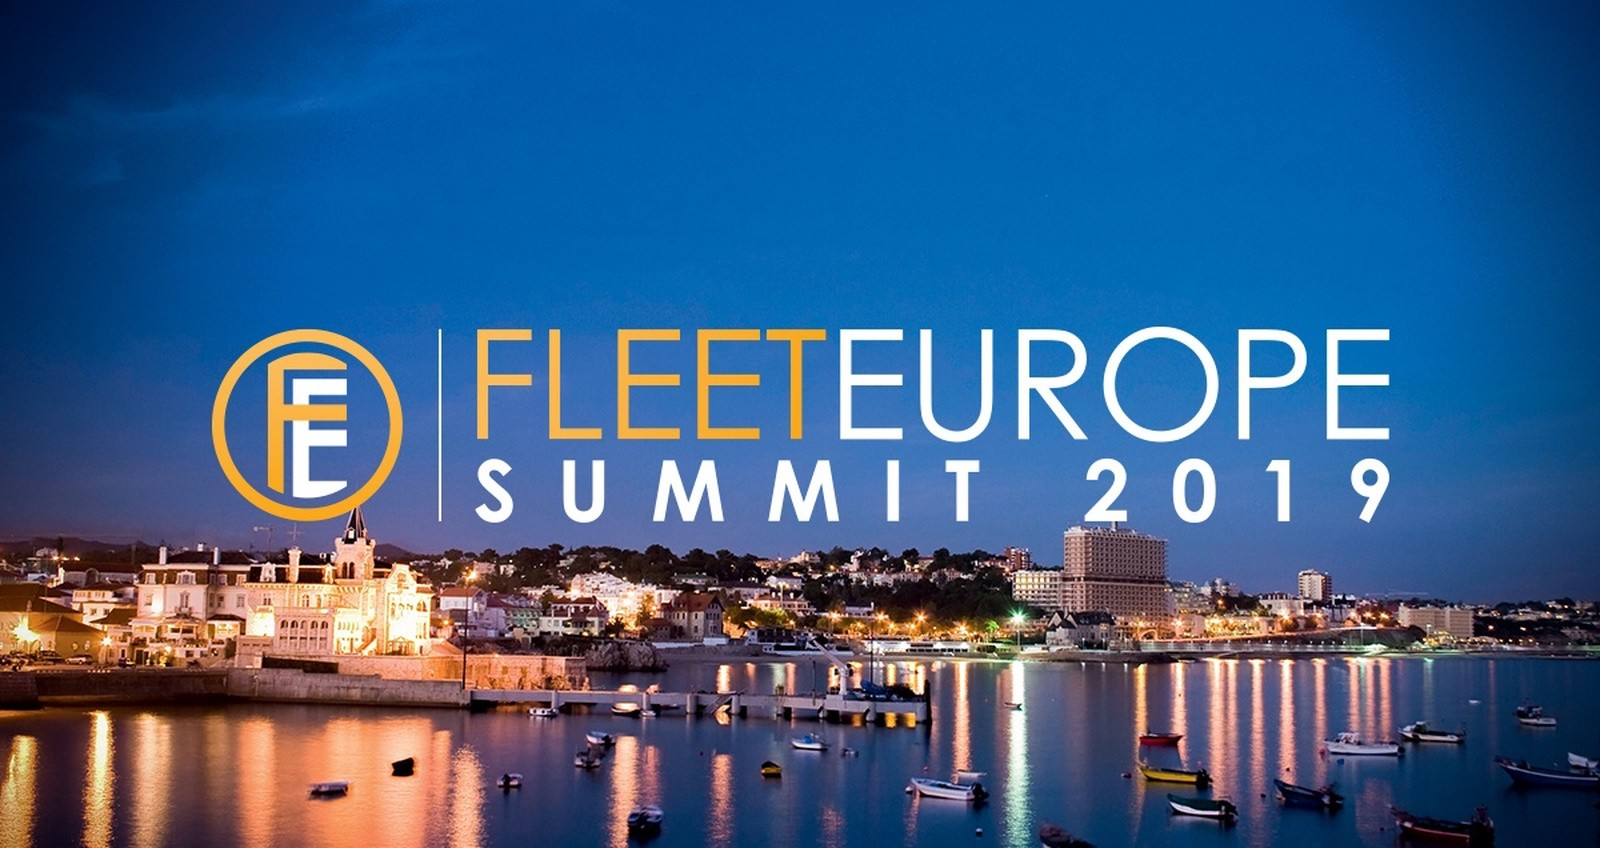 Leasys sarà presente al Fleet Europe Summit 2019